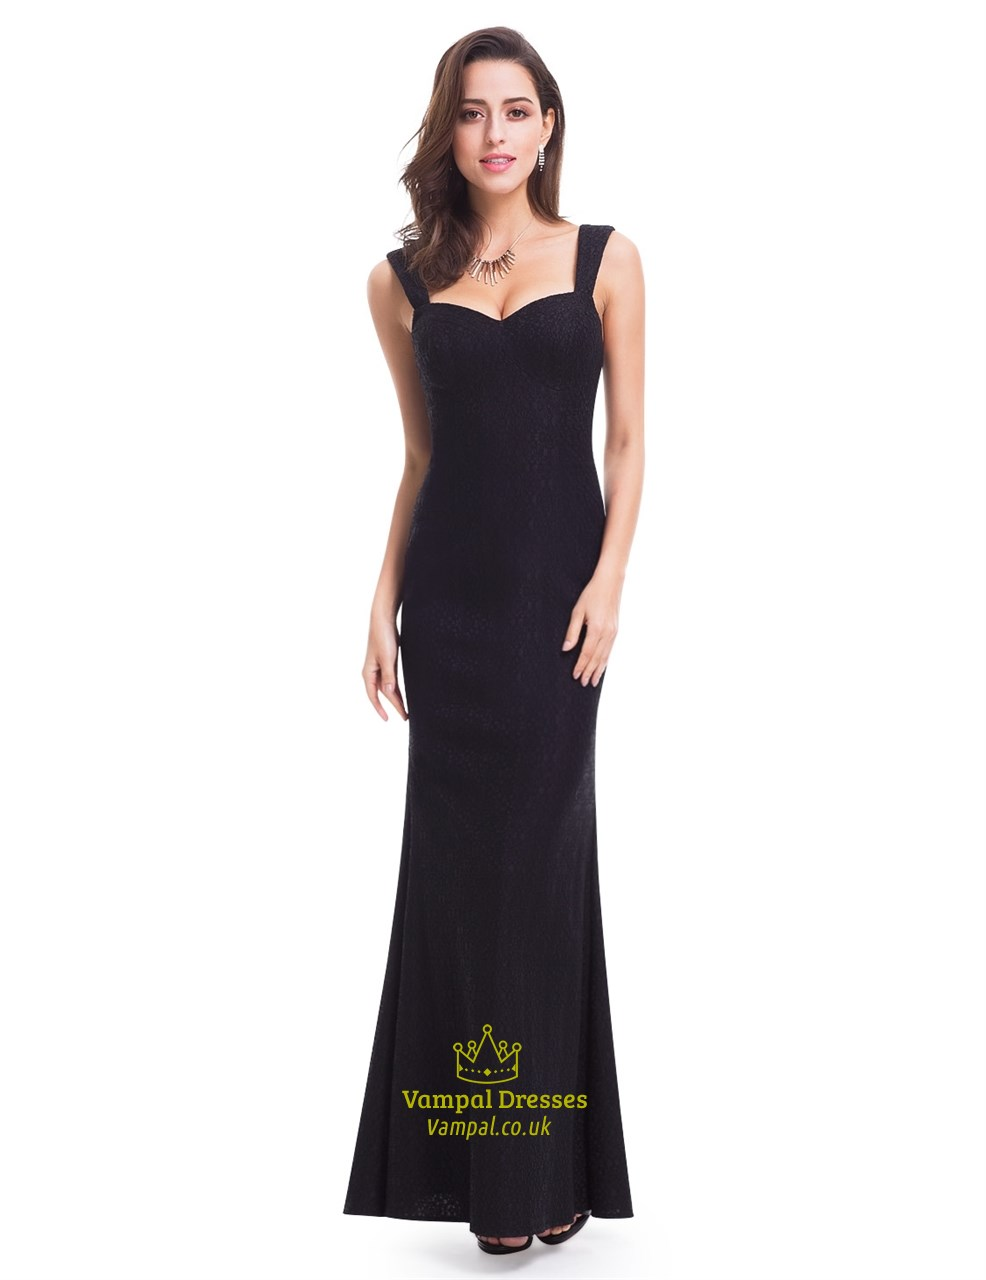 Black Sweetheart Neckline Prom Dresses